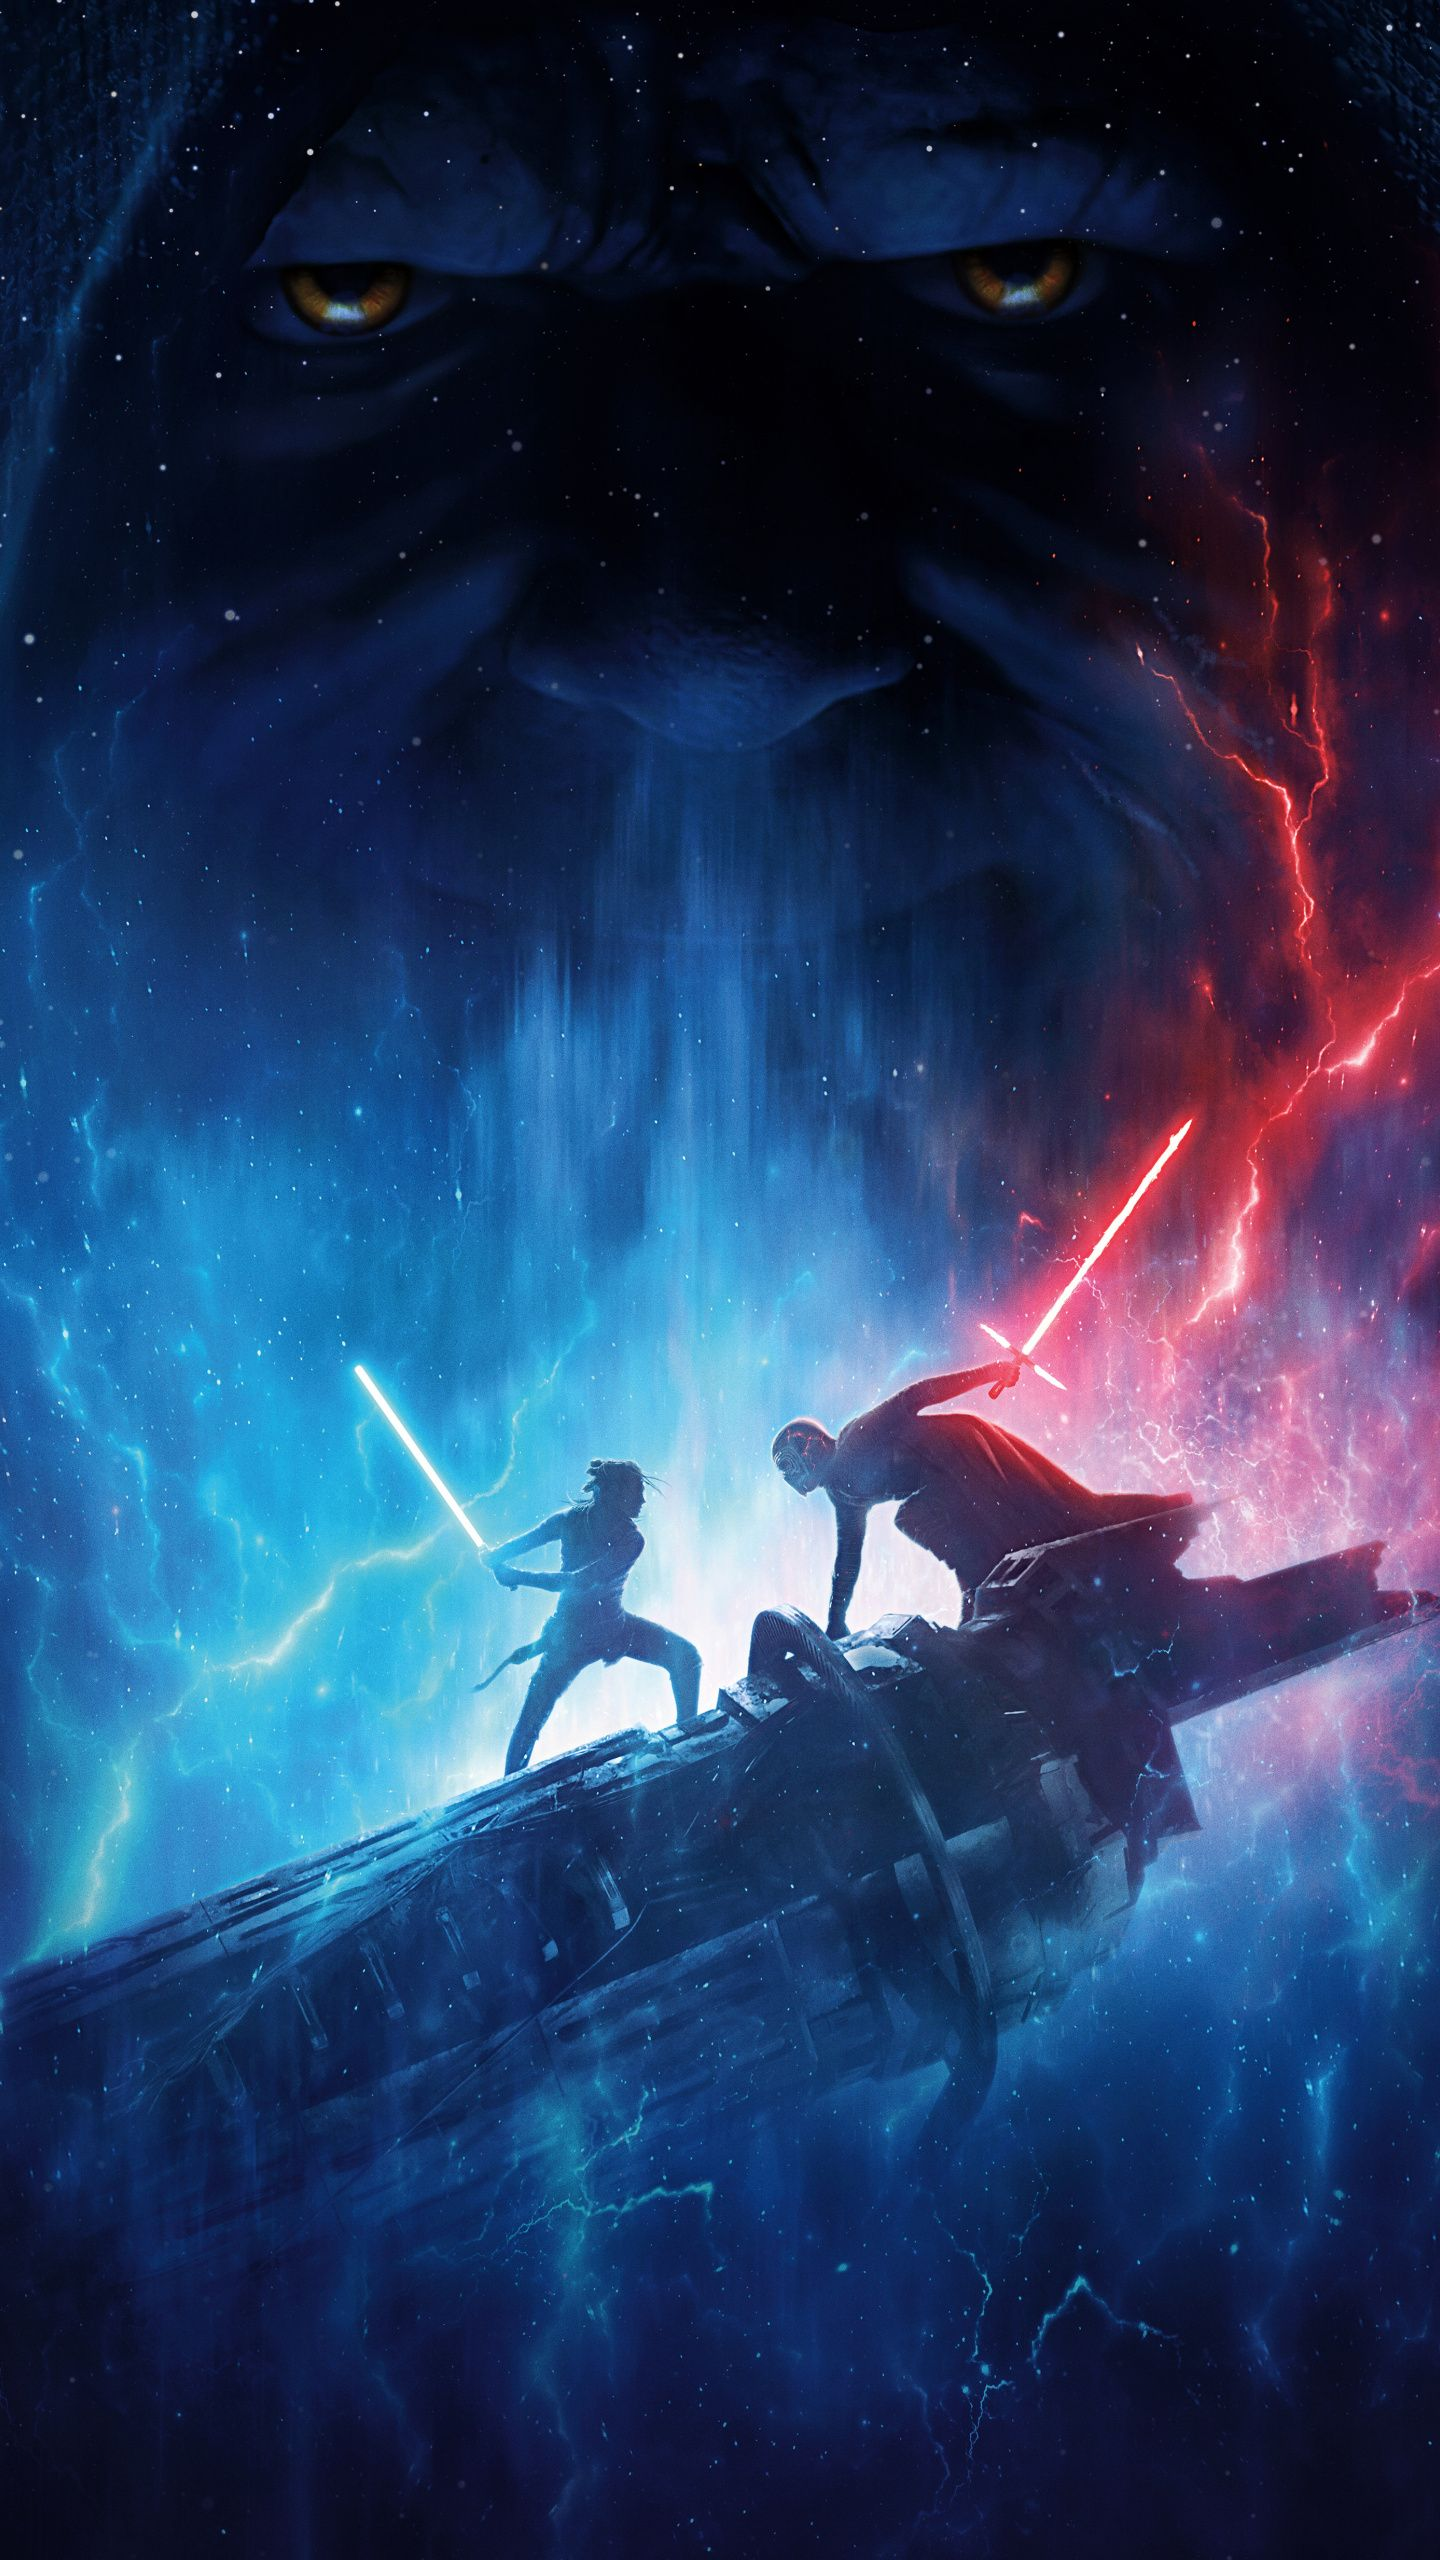 1440x2560 Star Wars The Rise Of Skywalker Fantasy Movie 2019 Wallpaper Star Wars Wallpaper Iphone Star Wars Wallpaper Star Wars Pictures